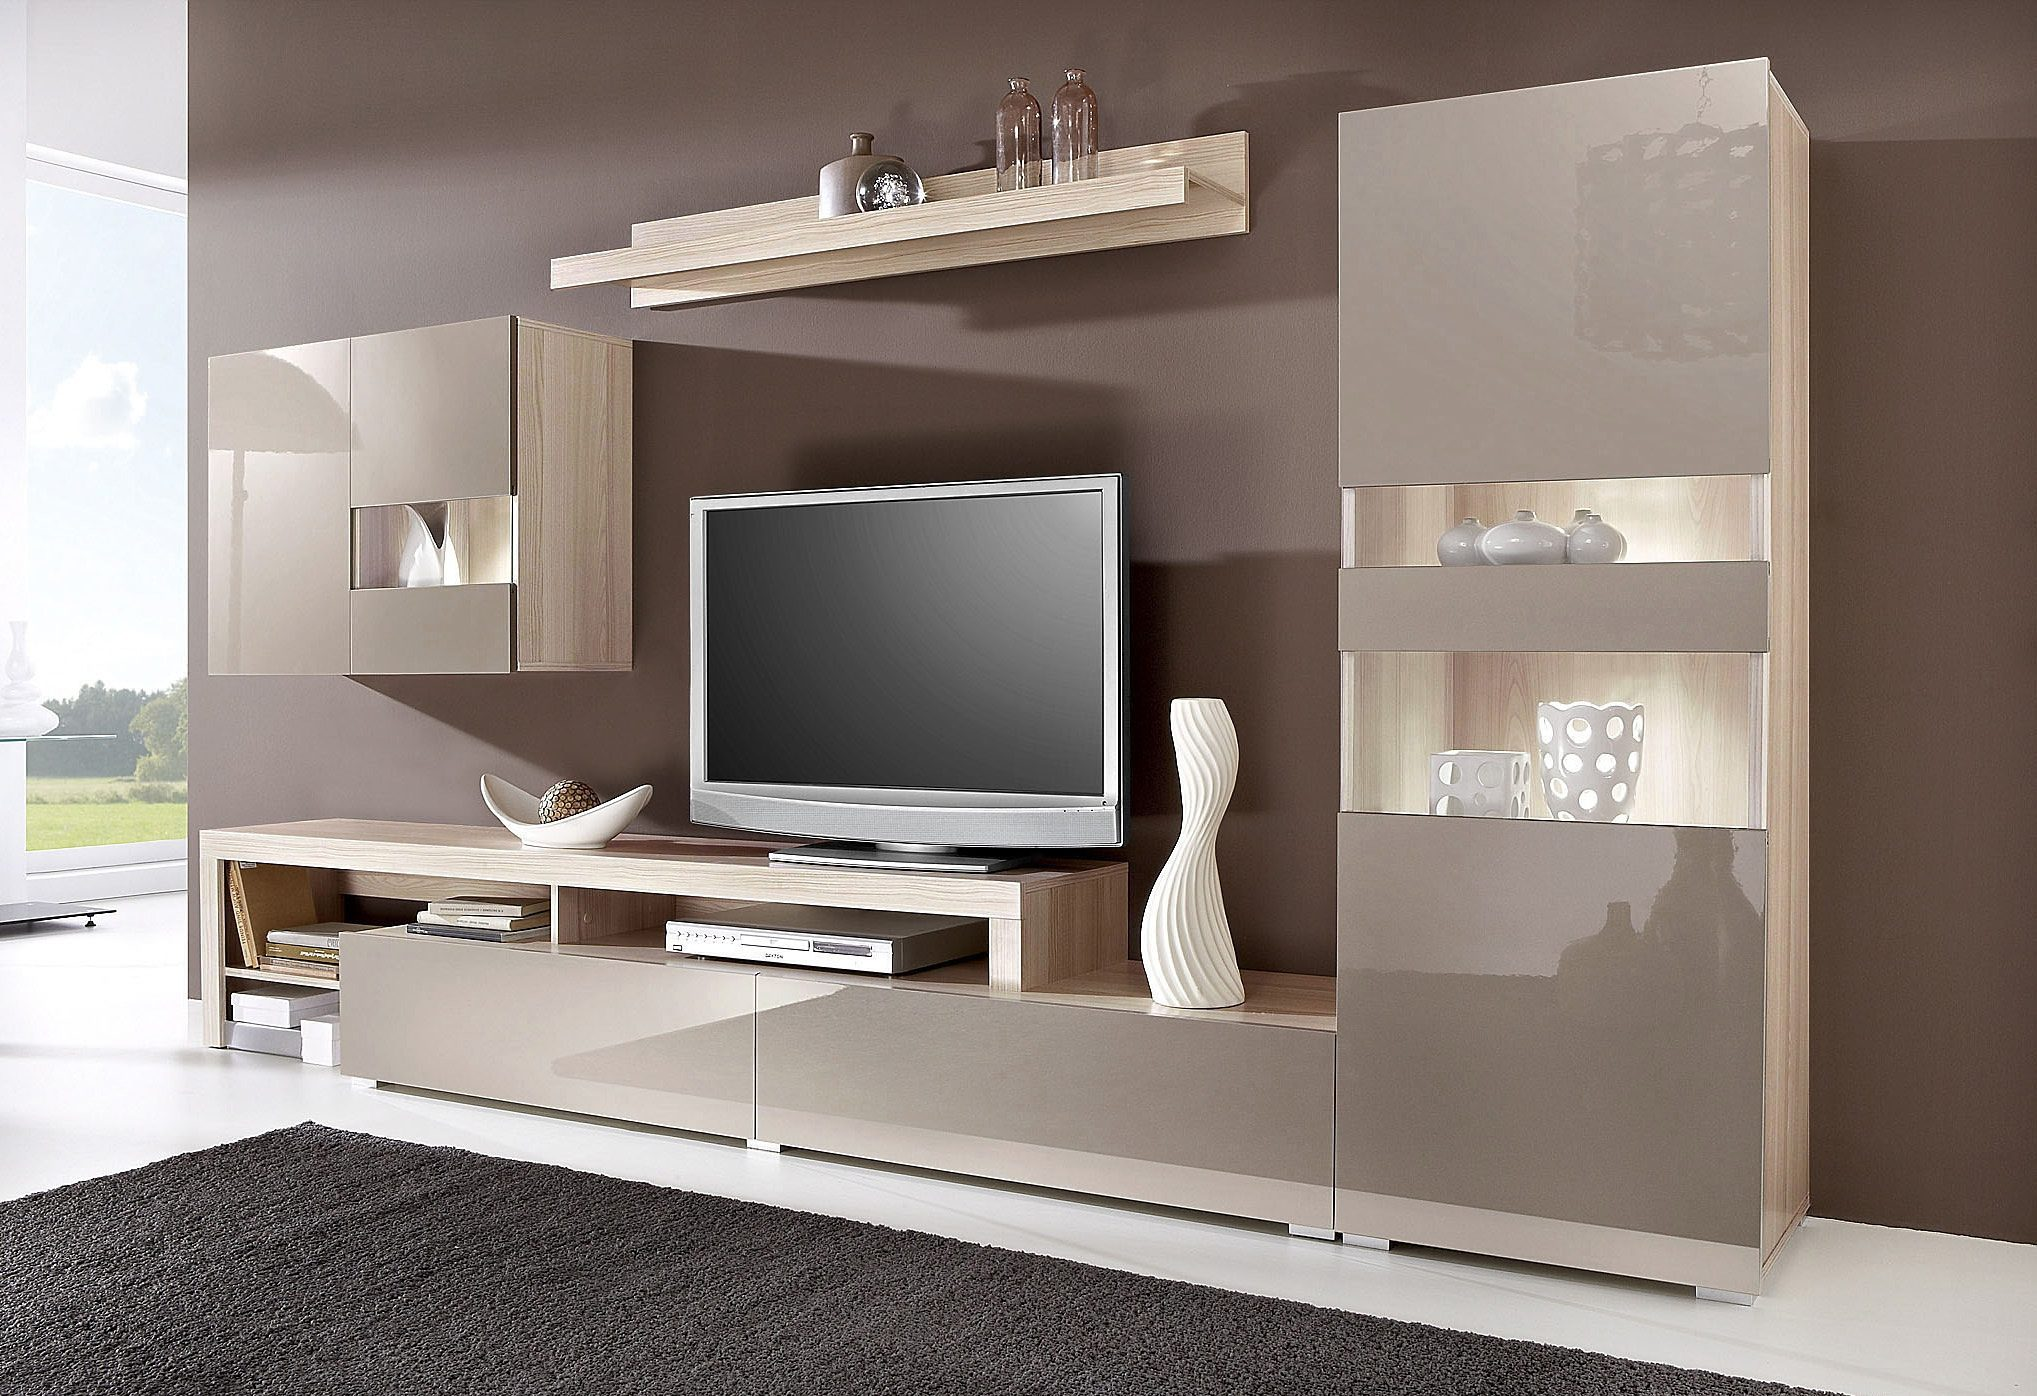 wohnwand viel stauraum just another wordpress. Black Bedroom Furniture Sets. Home Design Ideas